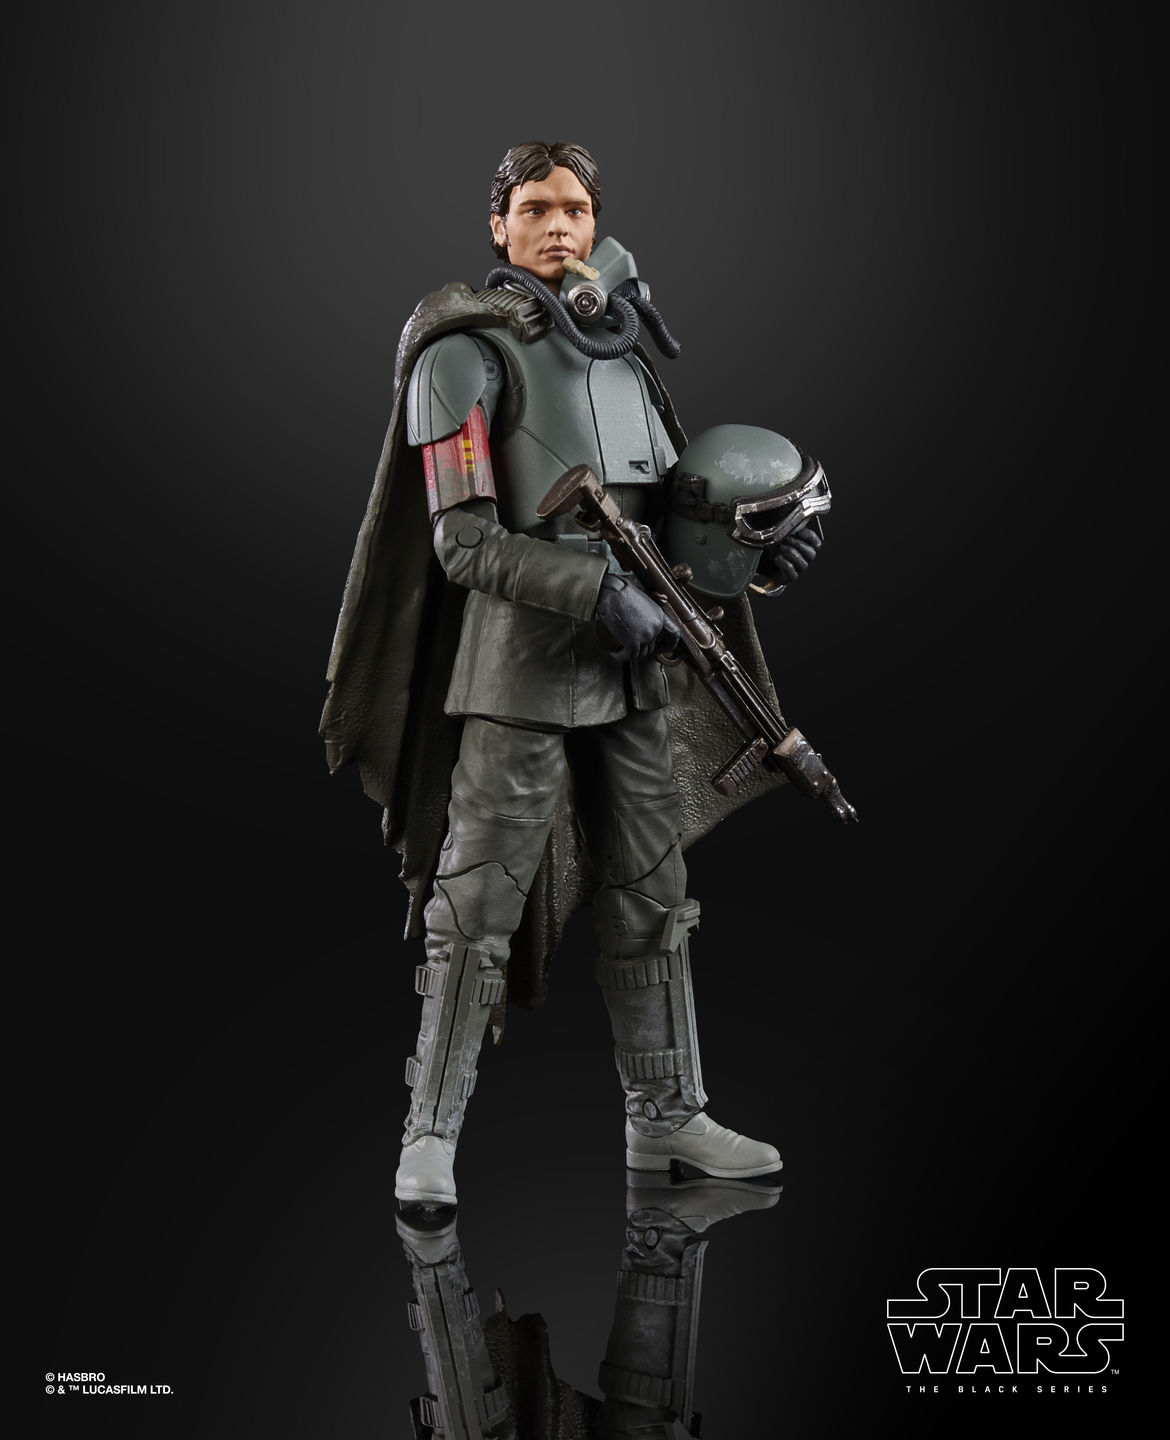 STAR WARS THE BLACK SERIES FIGURE - Han Solo Mimban (2)